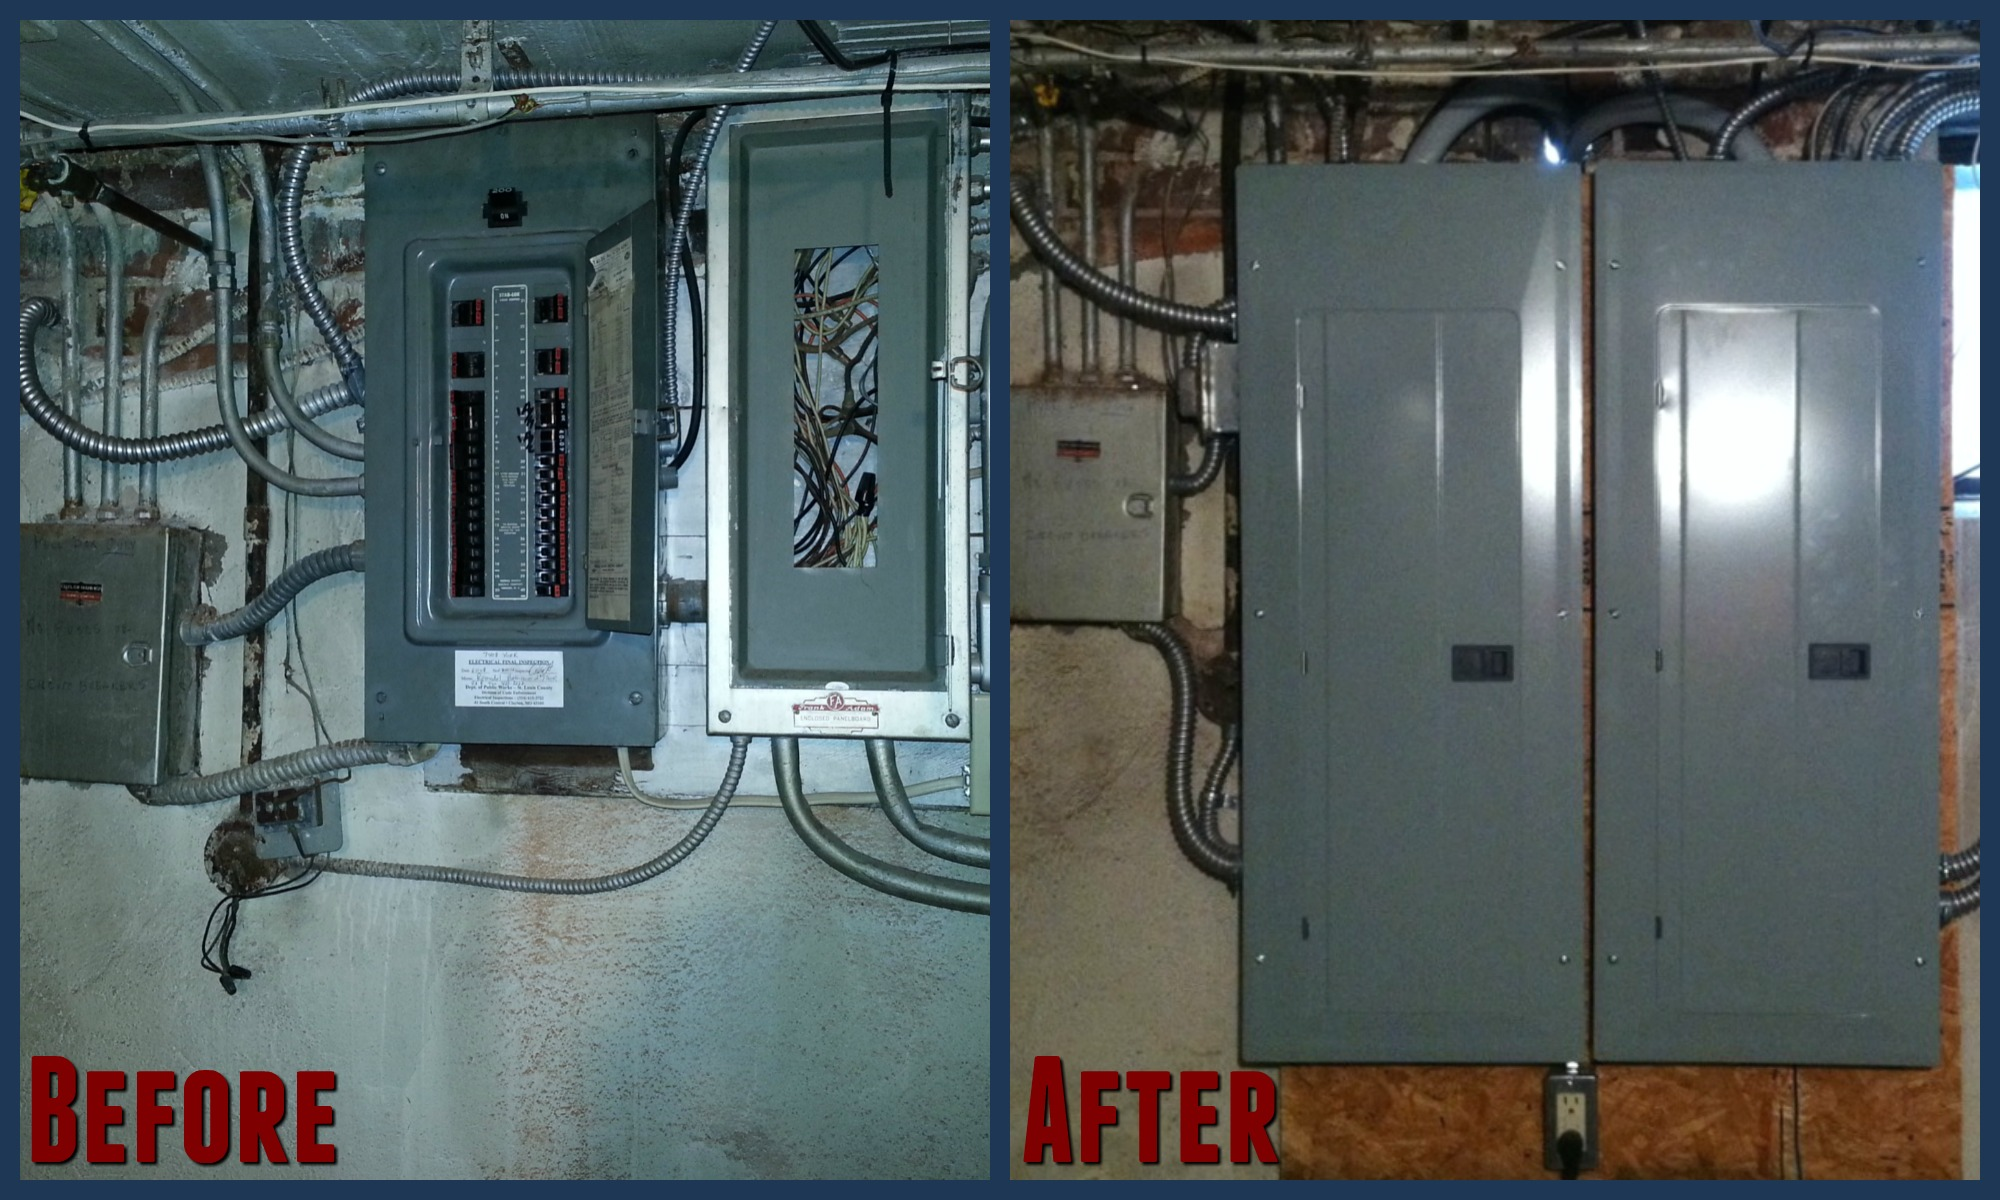 200 to 400 amp electric panel upgrade electrical panels fielder electrical services wiring a 400 amp service at panicattacktreatment.co